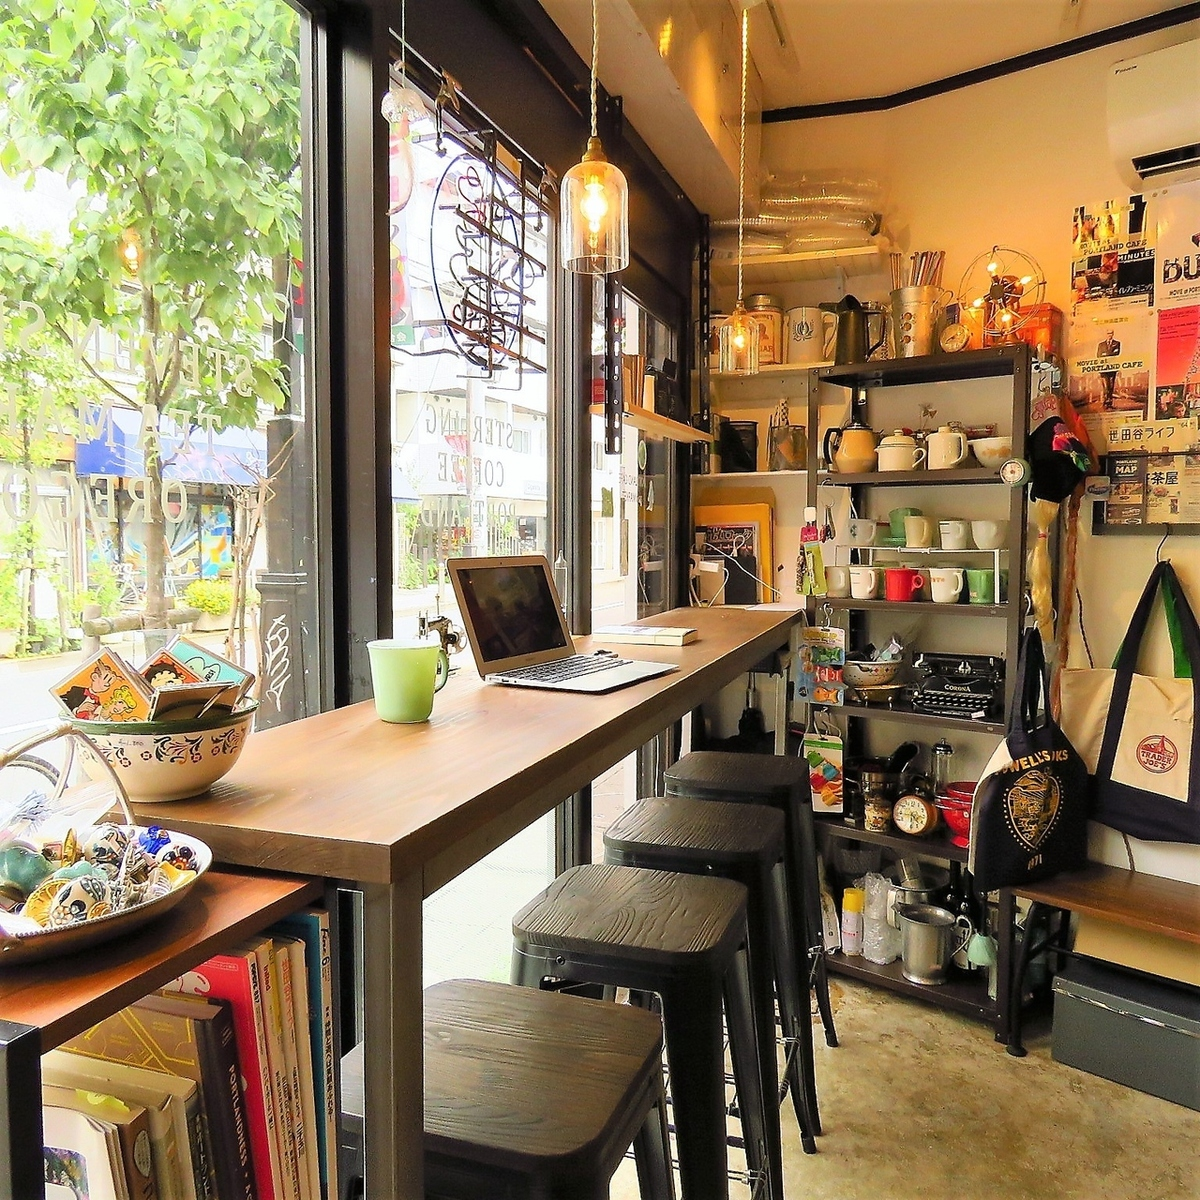 Inside the store where you can see Chazawa street over the glass.There are four seats at the counter for the 1st floor seating of movie posters and Oregon craft beer.It's just right for a break, it's a relaxing shop ♪